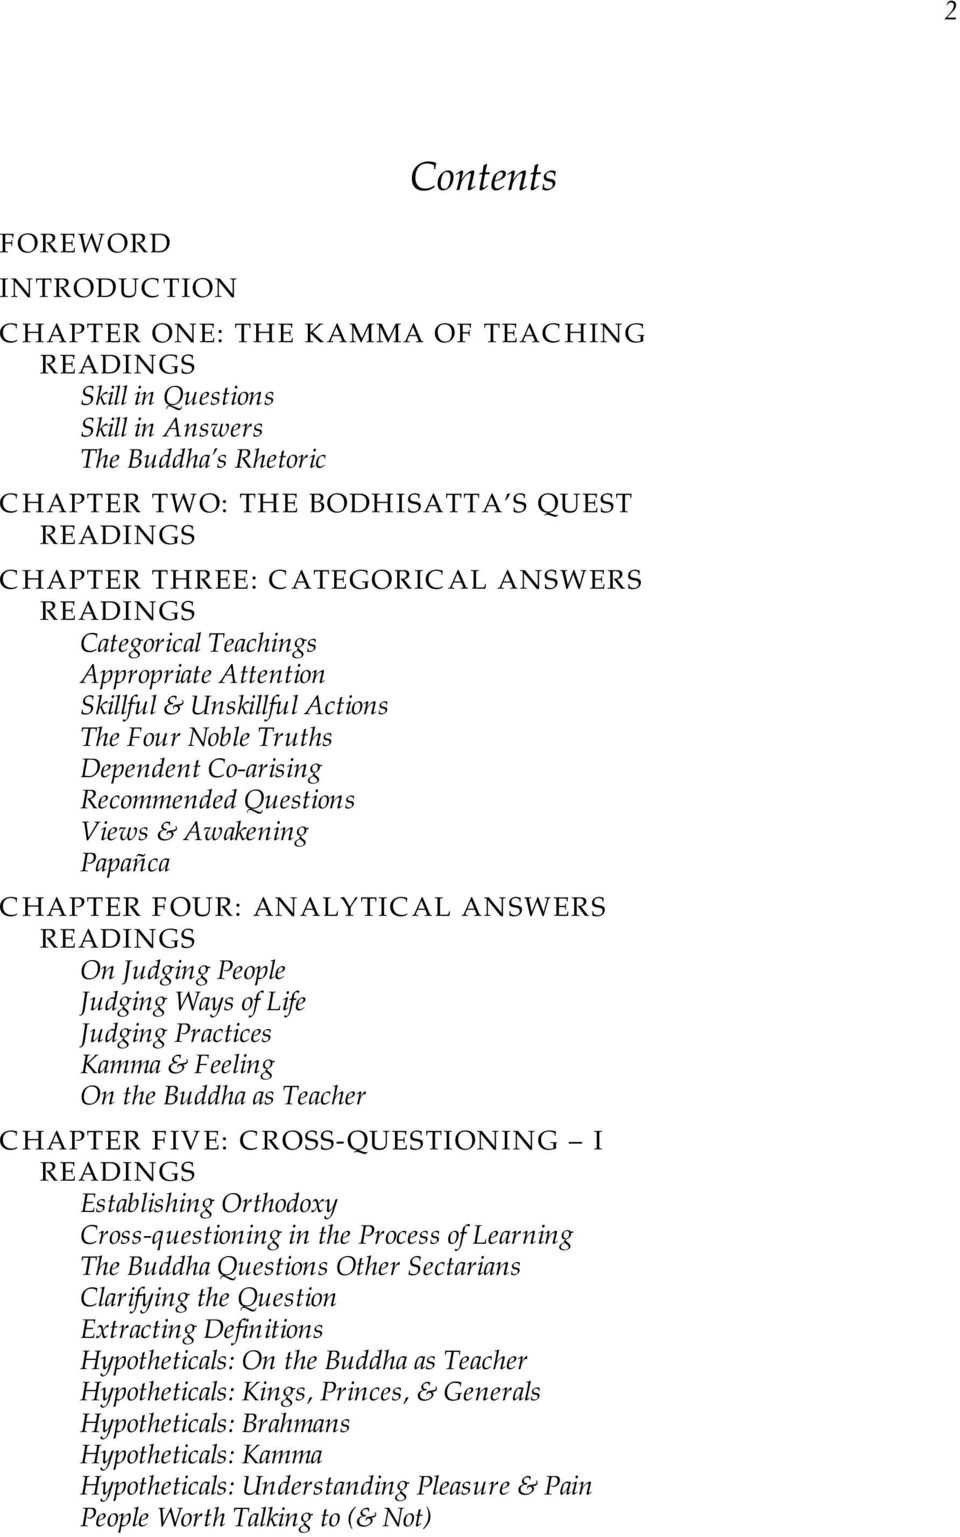 CHAPTER FOUR: ANALYTICAL ANSWERS READINGS On Judging People Judging Ways of Life Judging Practices Kamma & Feeling On the Buddha as Teacher CHAPTER FIVE: CROSS-QUESTIONING I READINGS Establishing